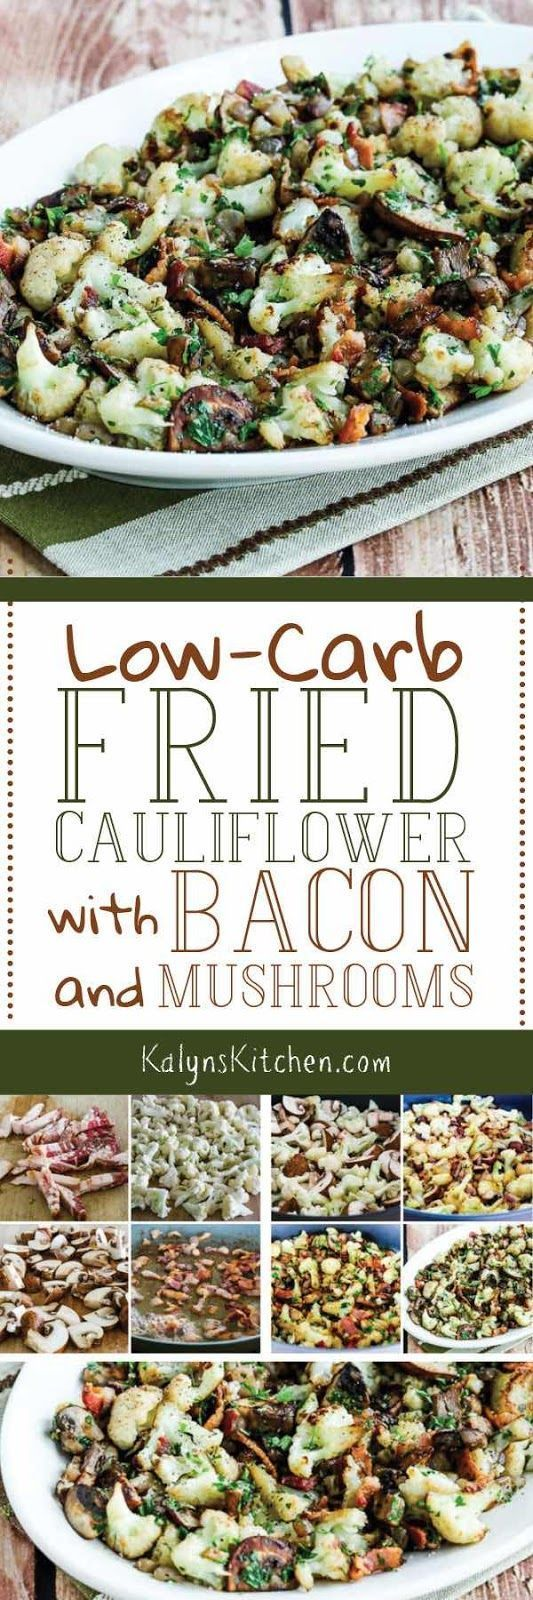 Low Carb Fried Cauliflower with Bacon and Mushrooms is a stove-top cauliflower dish that will make your tastebuds swoon. This cooks in minutes, and it's also Keto, low-glycemic, gluten-free, dairy-free, and can be South Beach Diet friendly with turkey bacon. [found on KalynsKitchen.com]